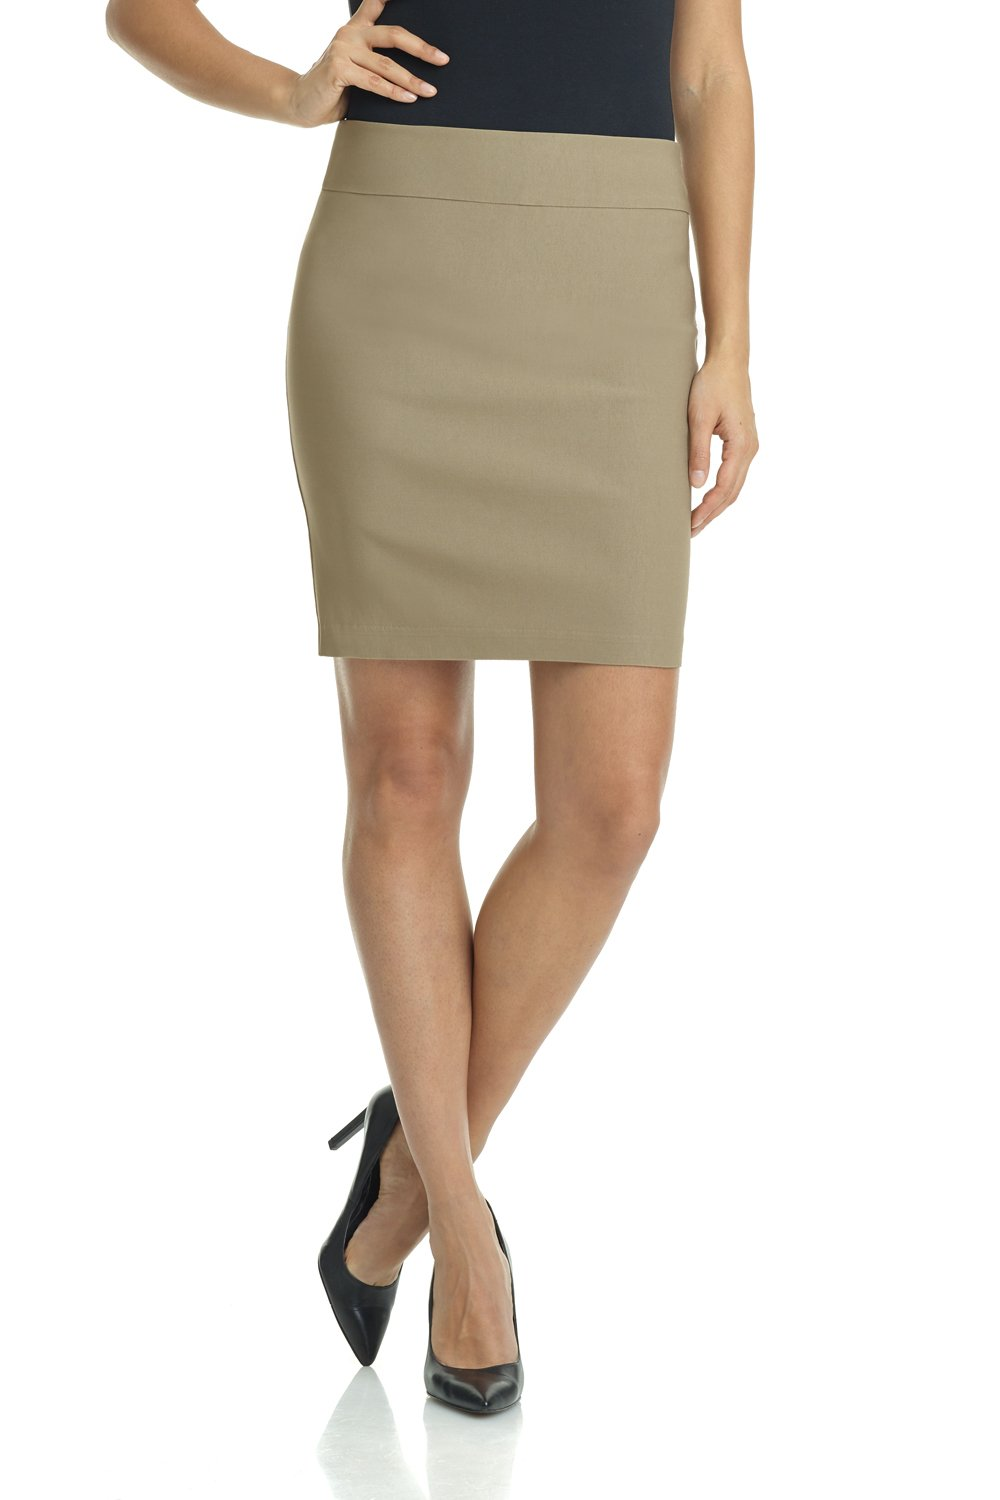 f50eeb354 Rekucci Women's Ease In To Comfort Stretchable Above The Knee Pencil Skirt  19